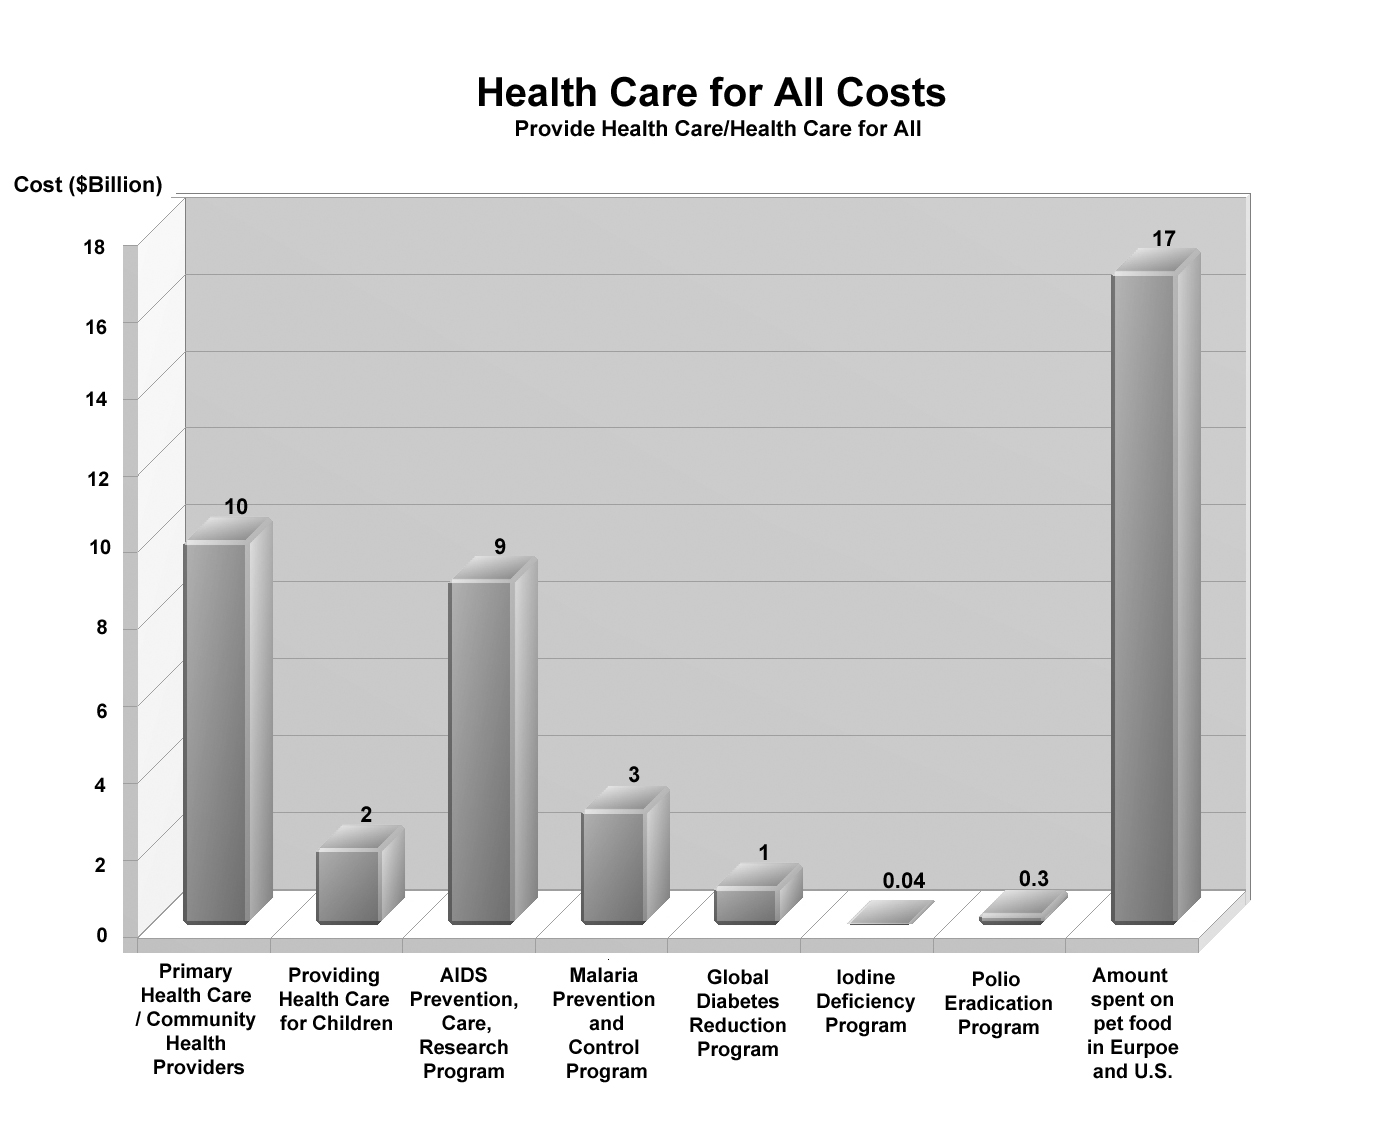 Costs of health care for all